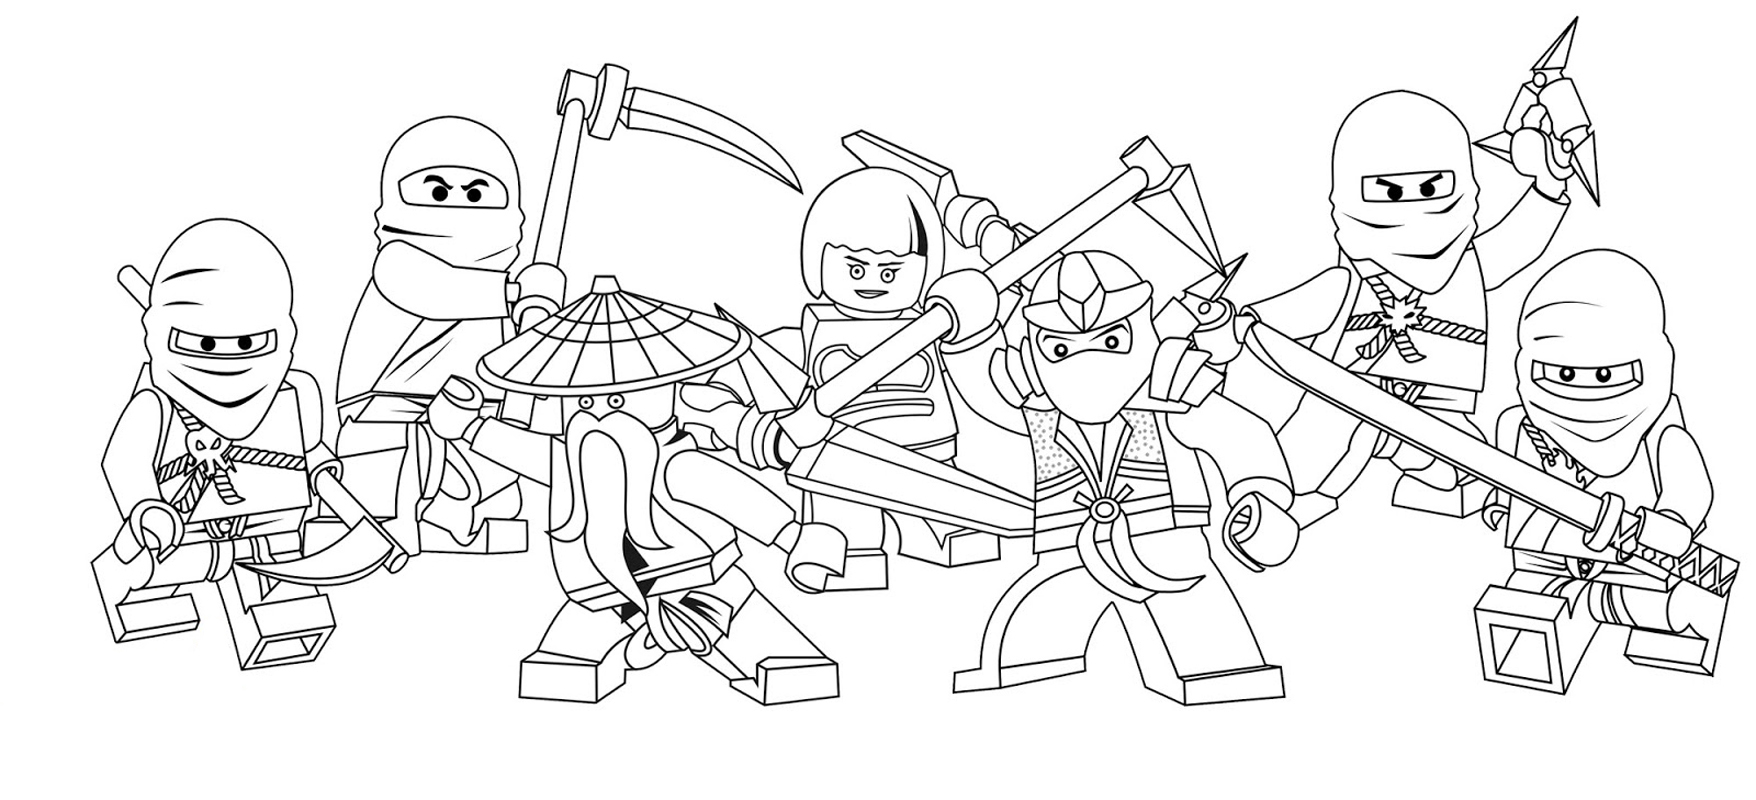 Lego City Coloring Pages Coloring Coloring Pages